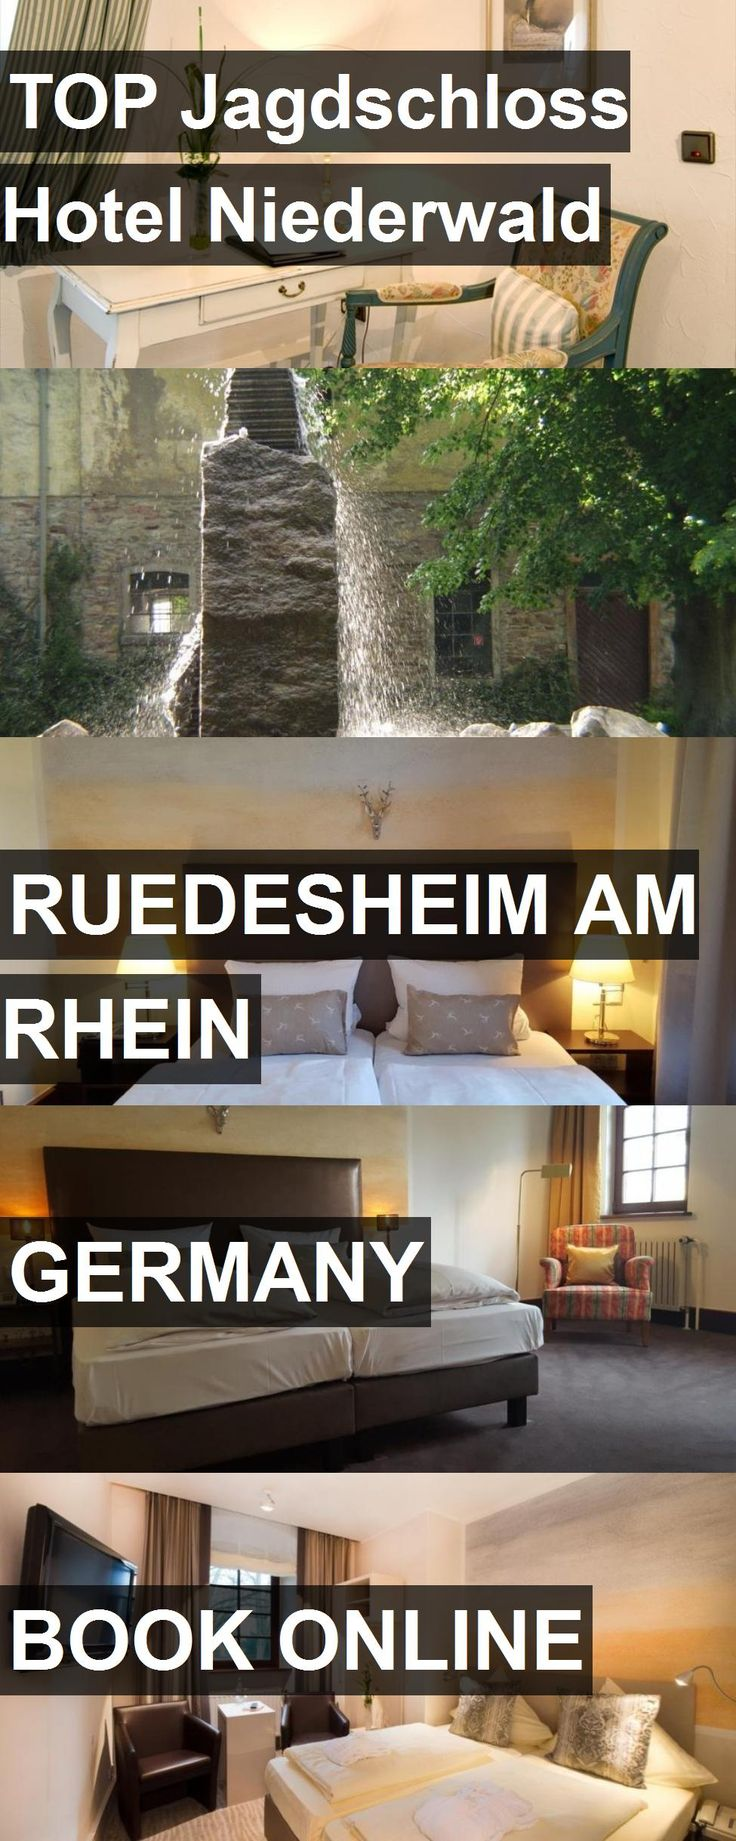 TOP Jagdschloss Hotel Niederwald in Ruedesheim am Rhein, Germany. For more information, photos, reviews and best prices please follow the link. #Germany #RuedesheimamRhein #travel #vacation #hotel